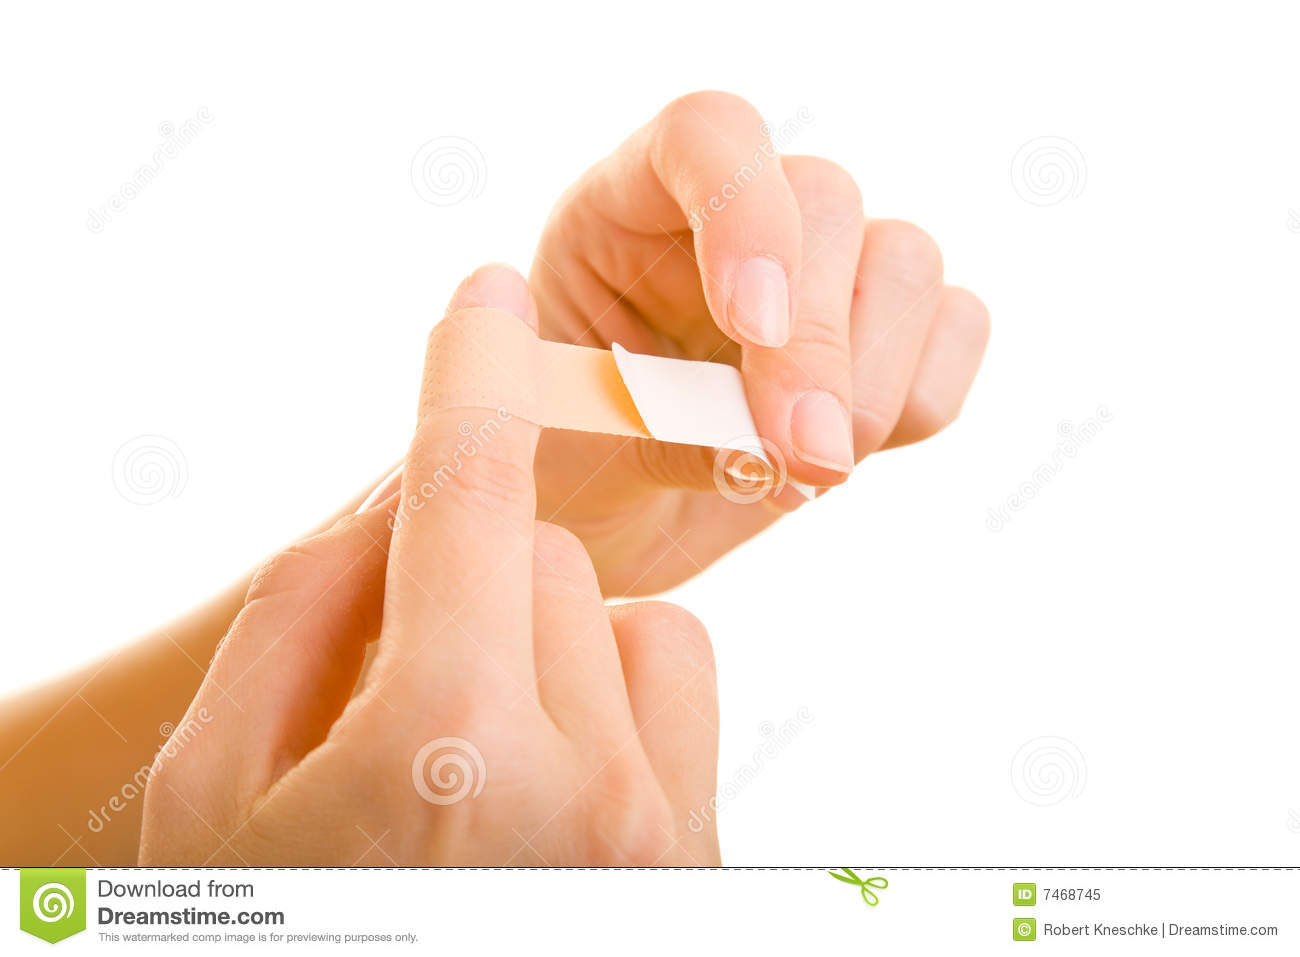 Common Hand and Finger Problems